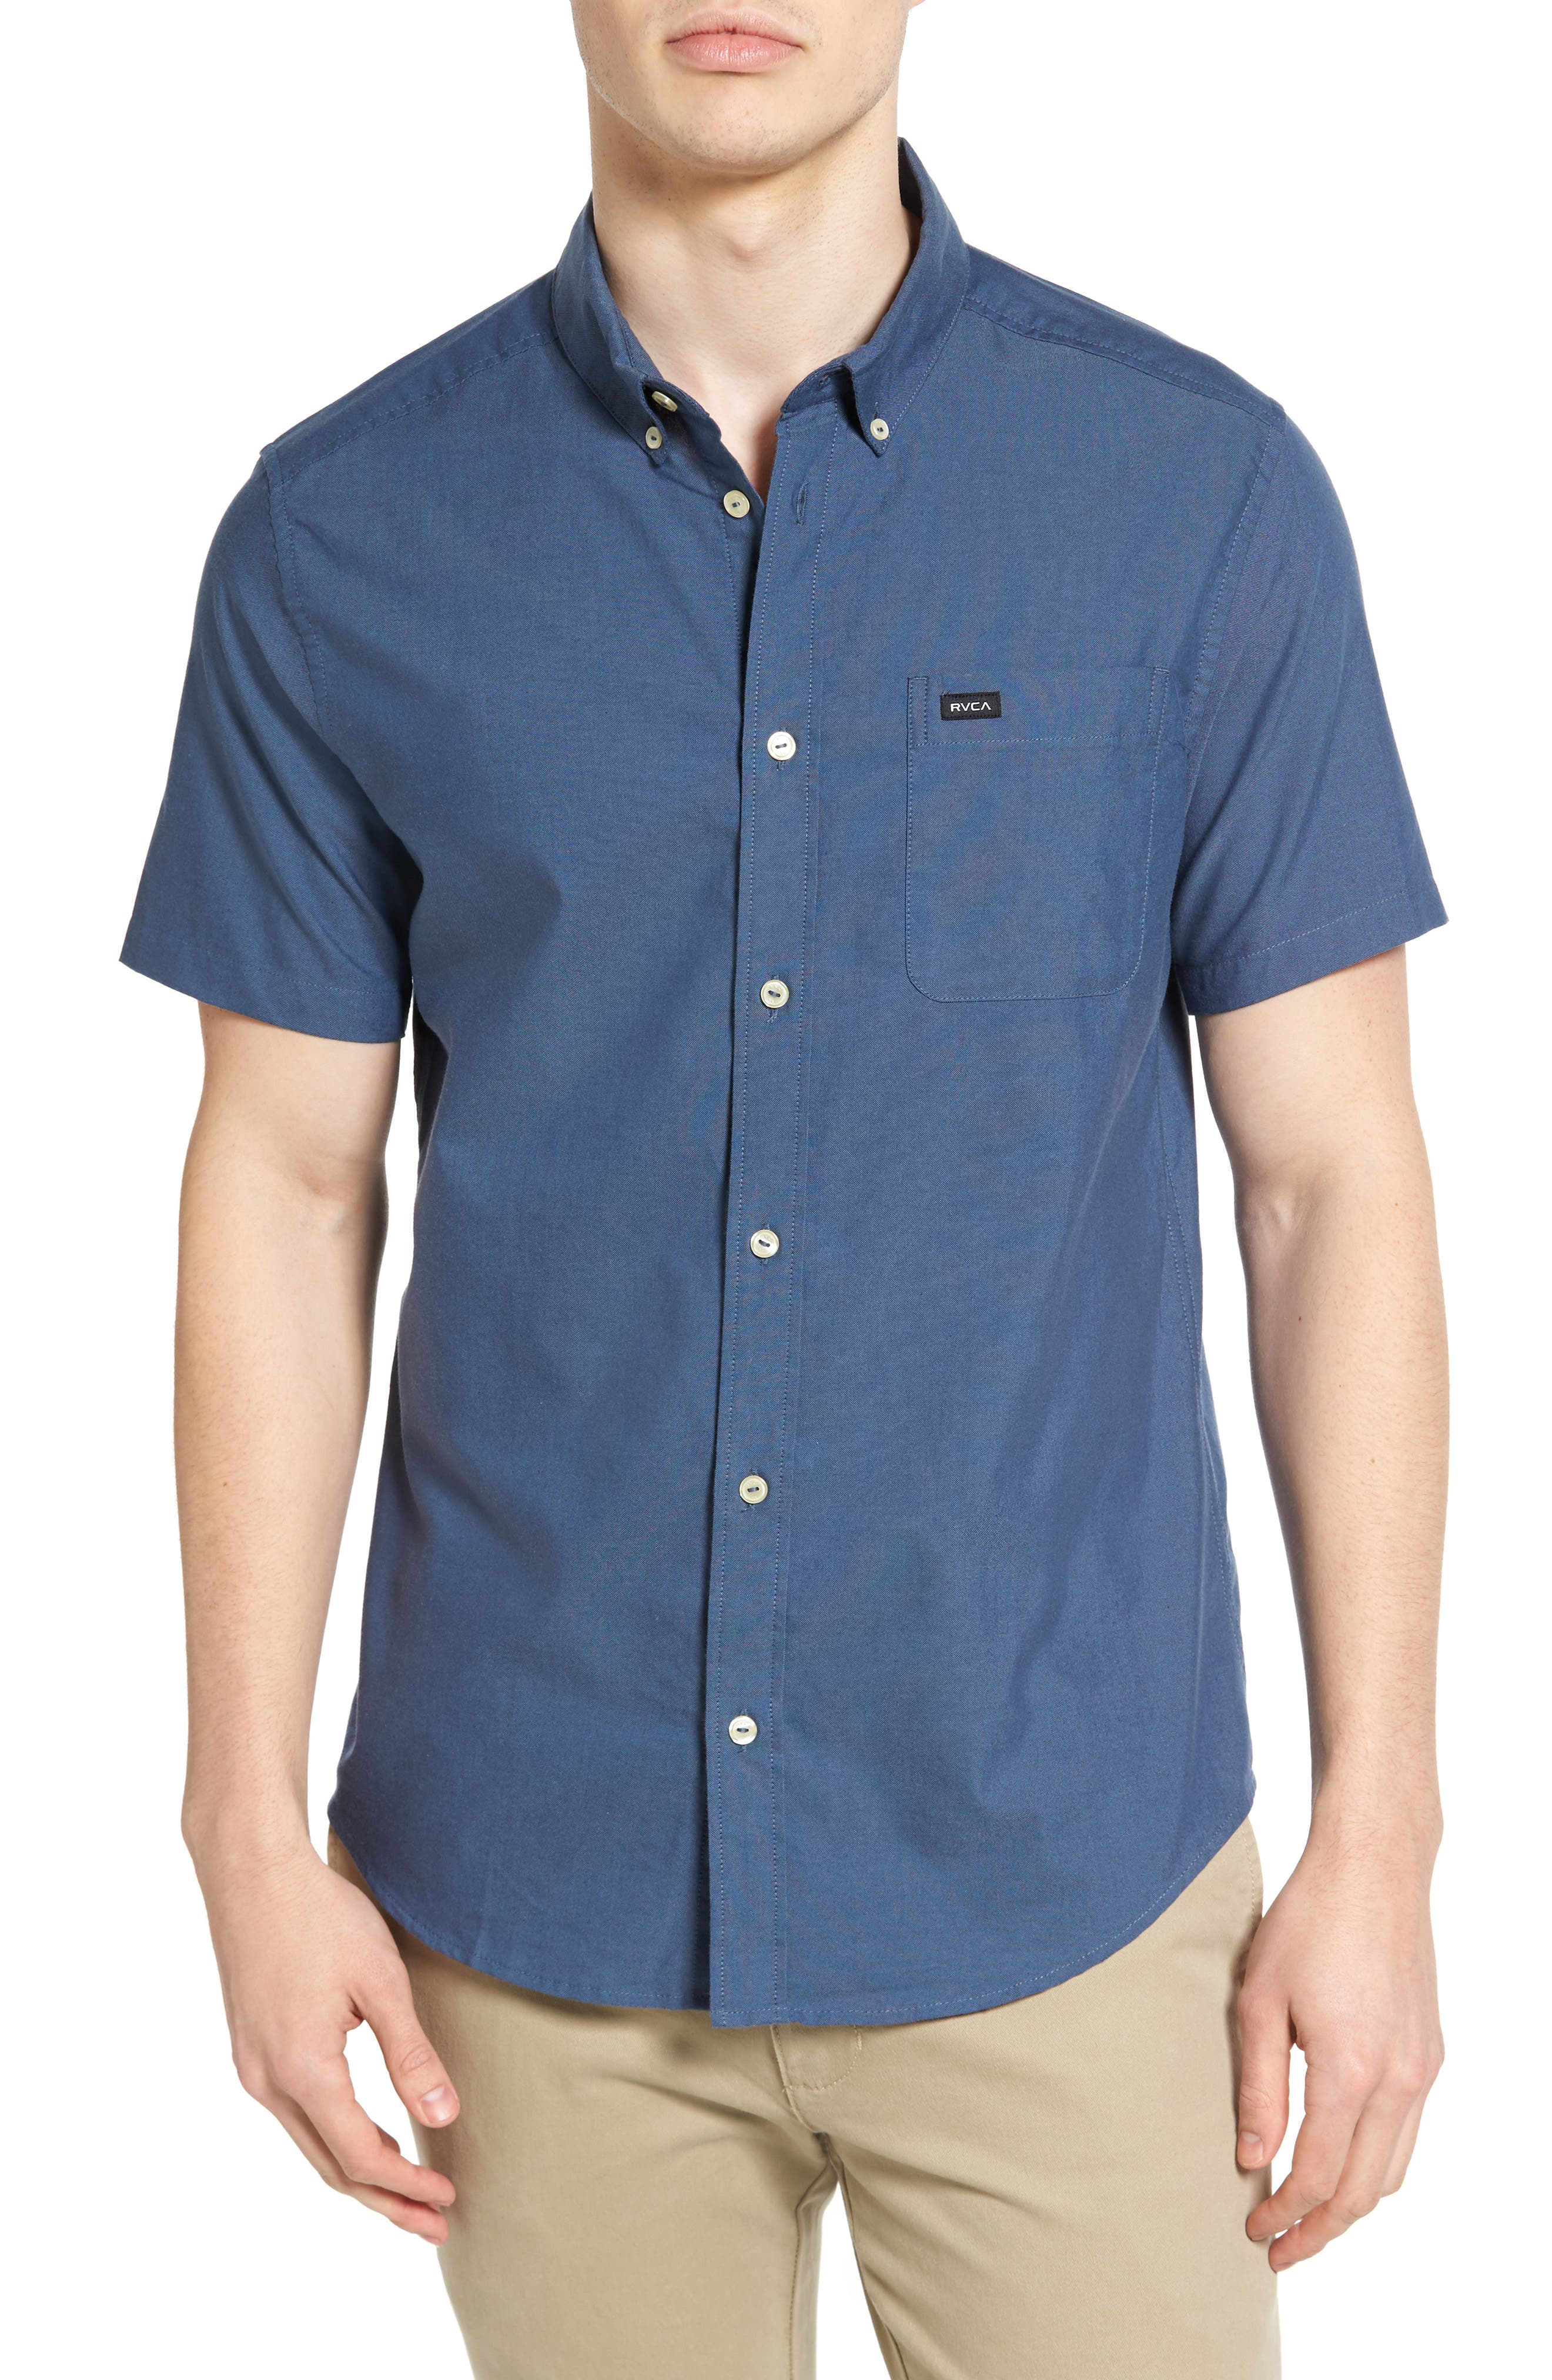 'That'll Do' Slim Fit Short Sleeve Oxford Shirt,                         Main,                         color, 434